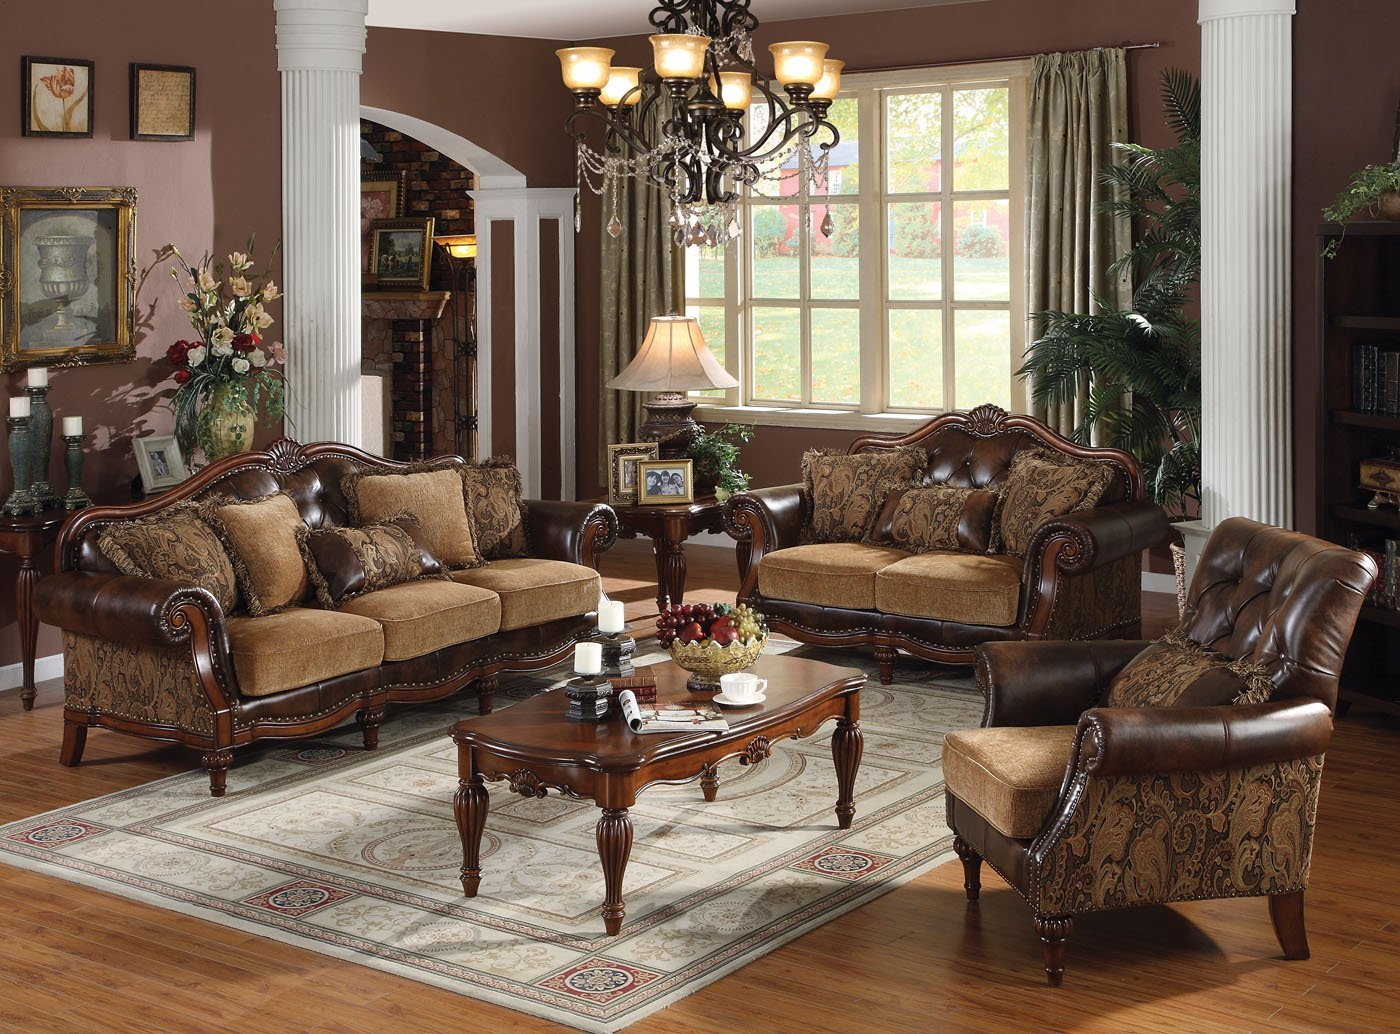 Living Room Furniture: Cherry Wood Living Room Furniture